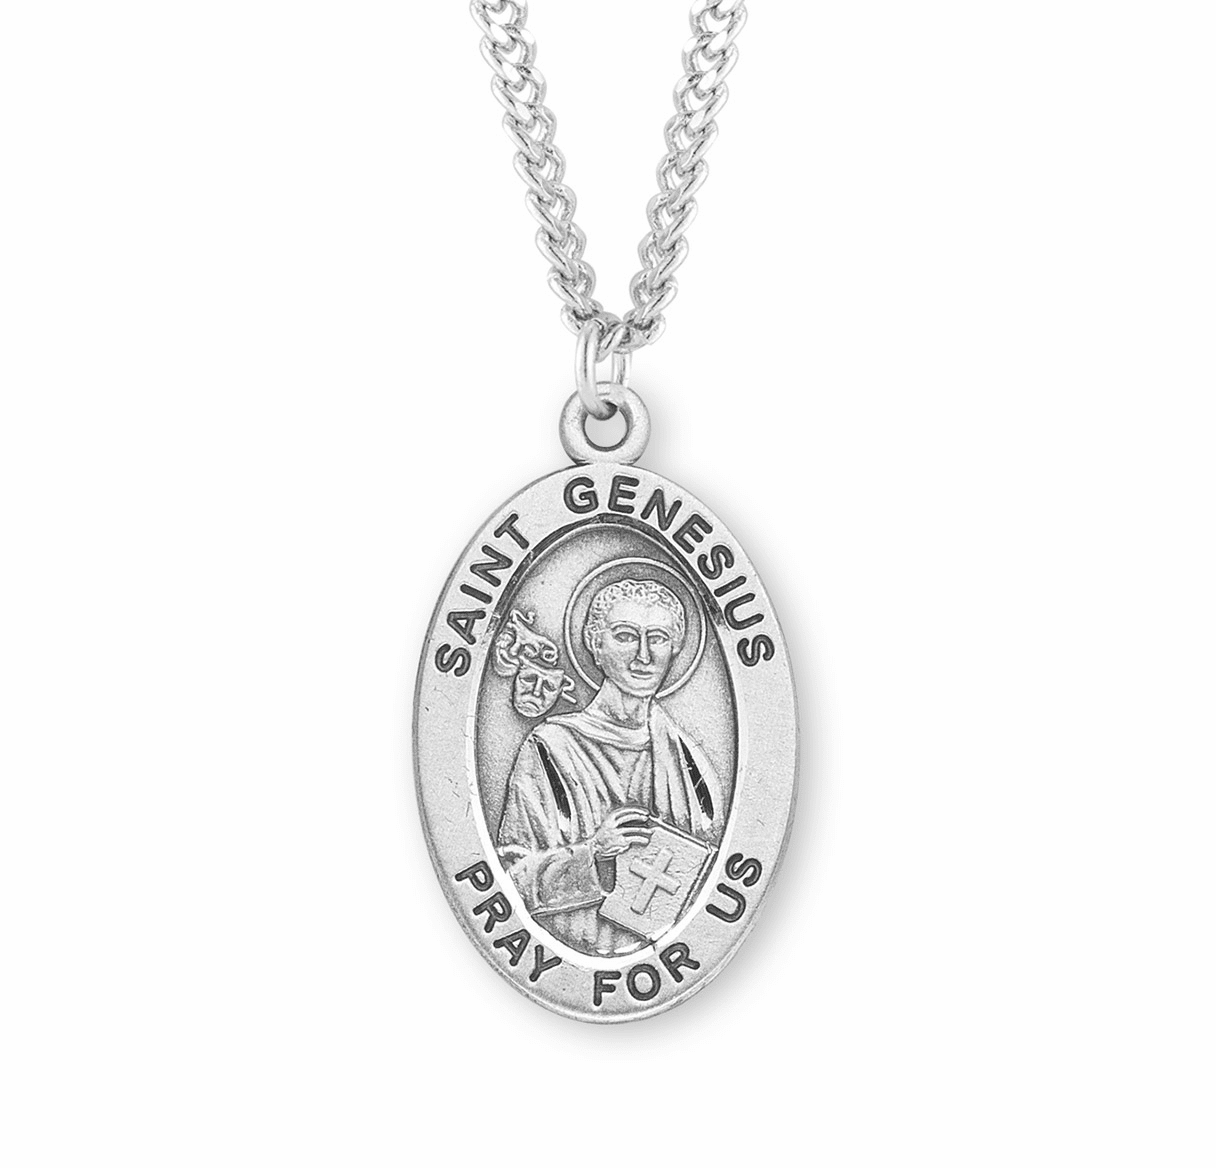 St Genesius Large Oval Sterling Silver Patron Saint Medals by HMH Religious